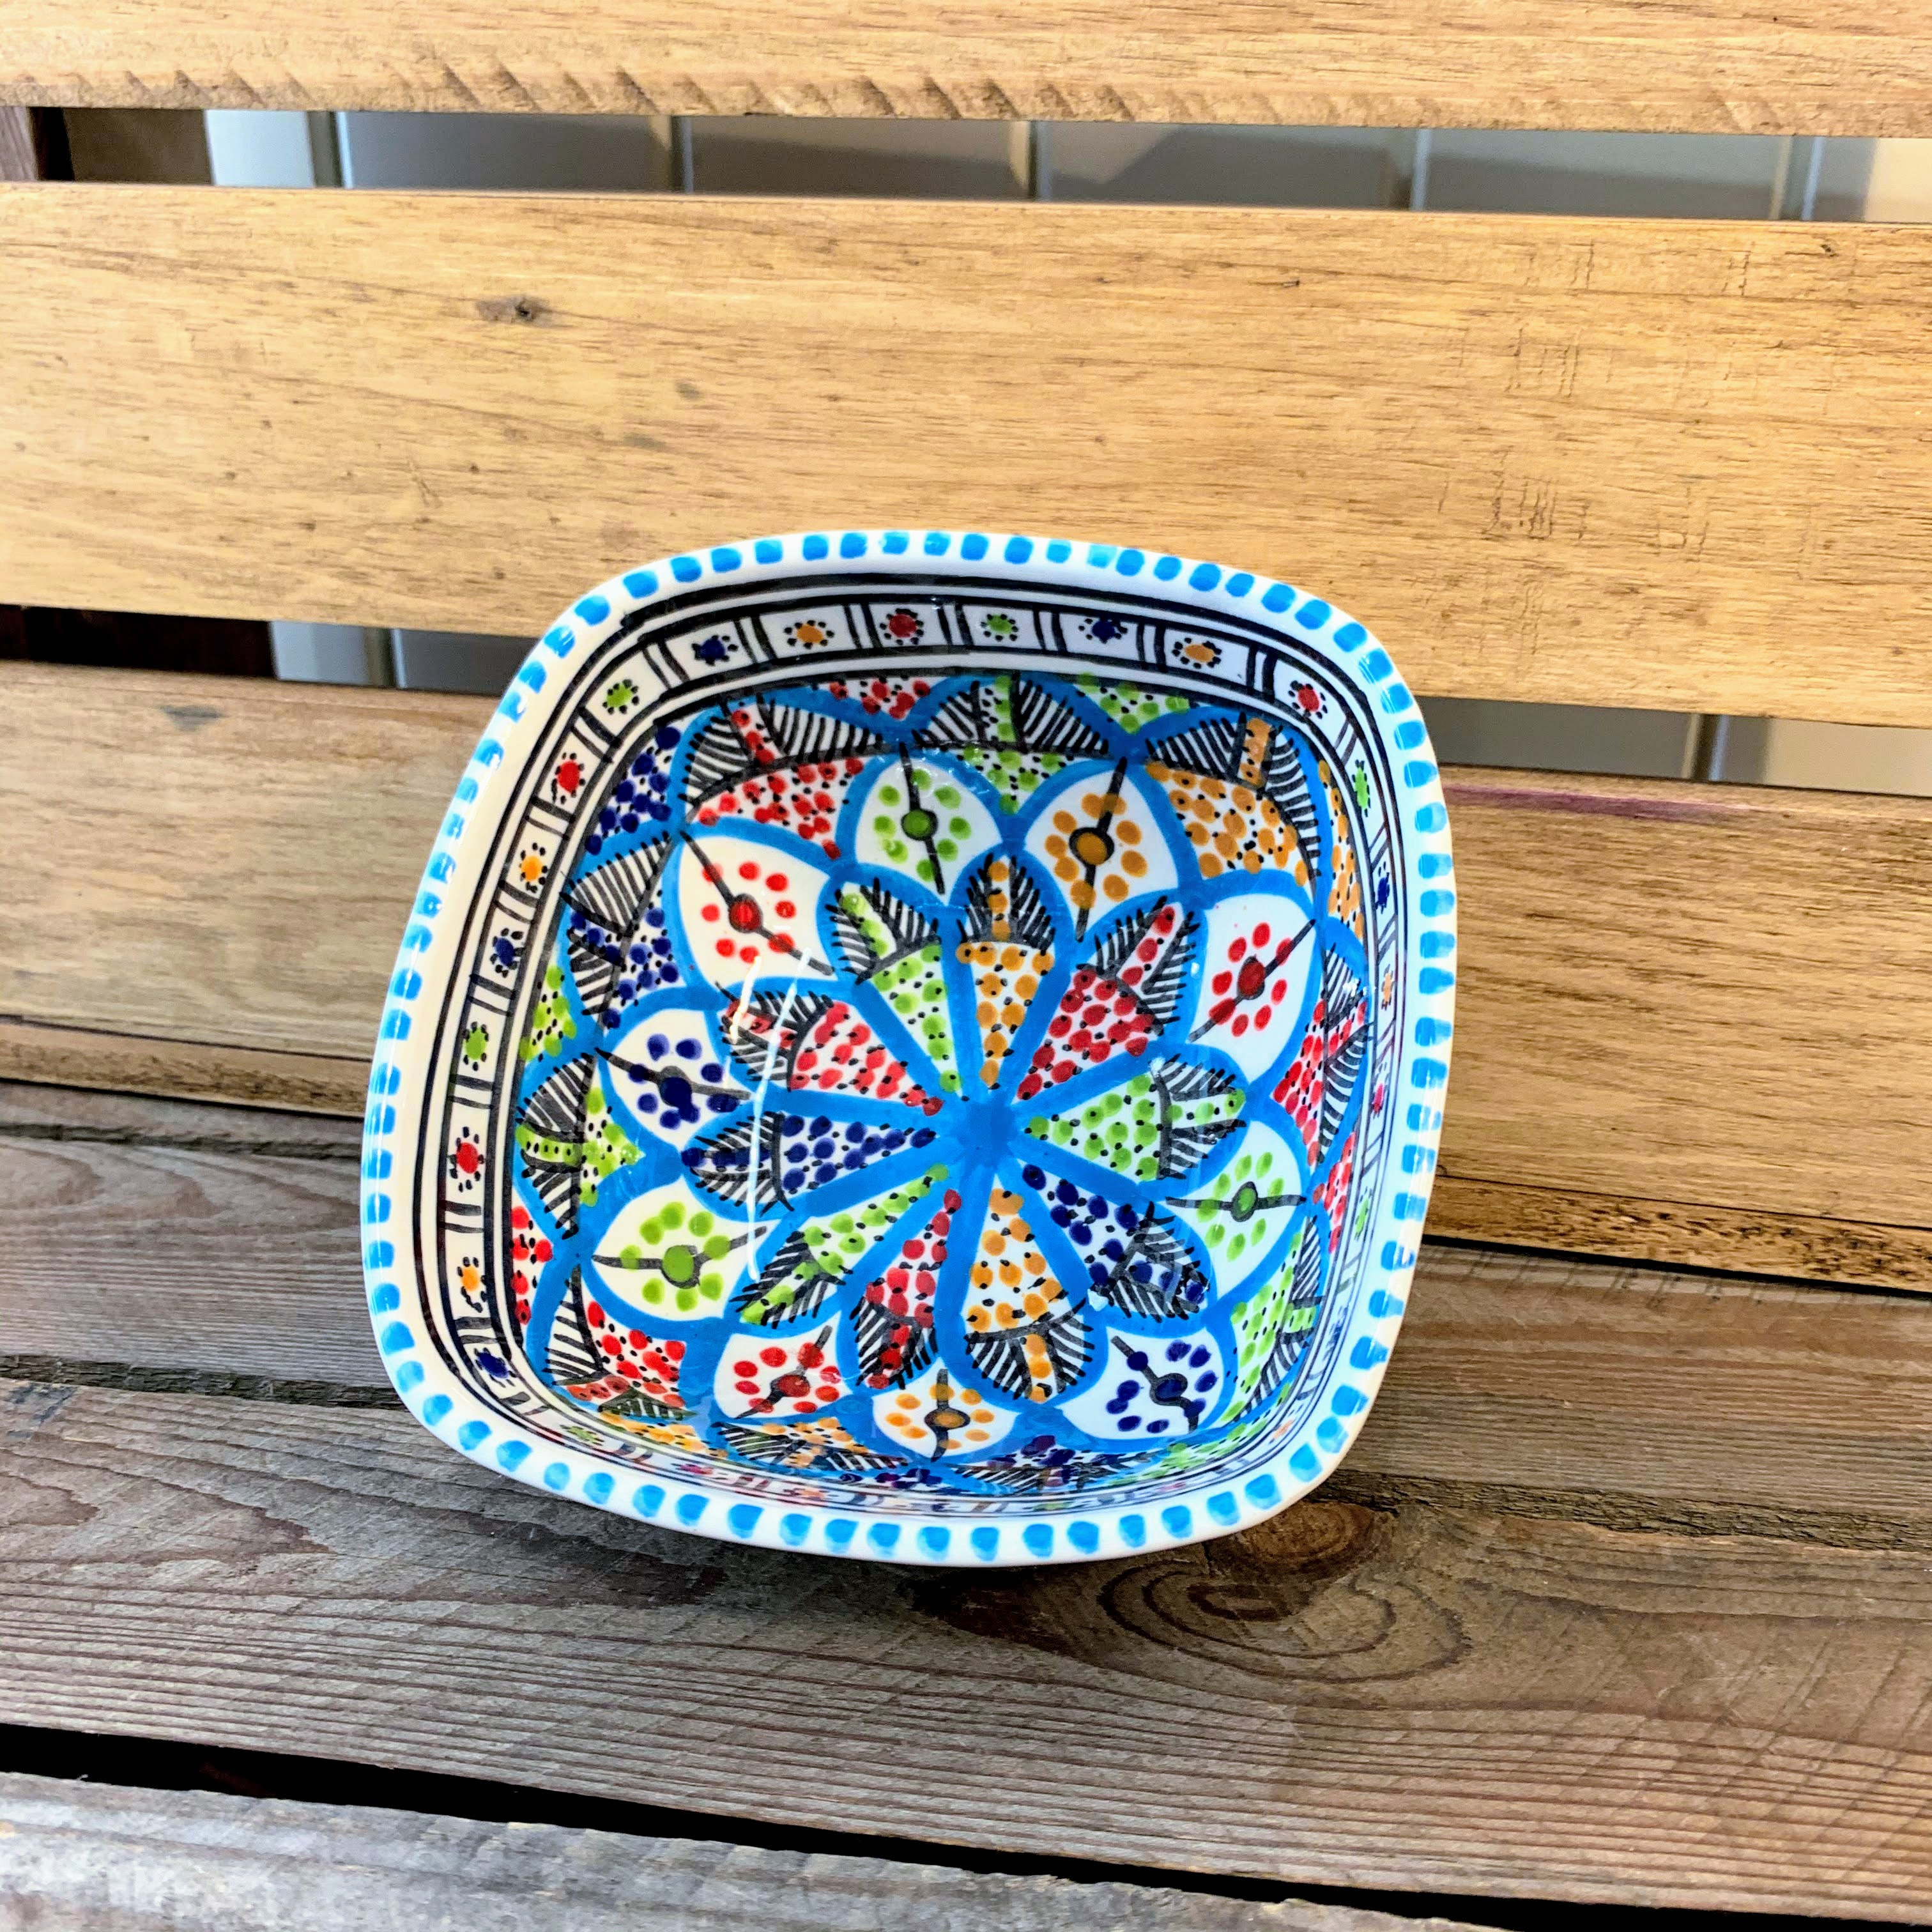 Tunisian Hand Painted Bowls - Square